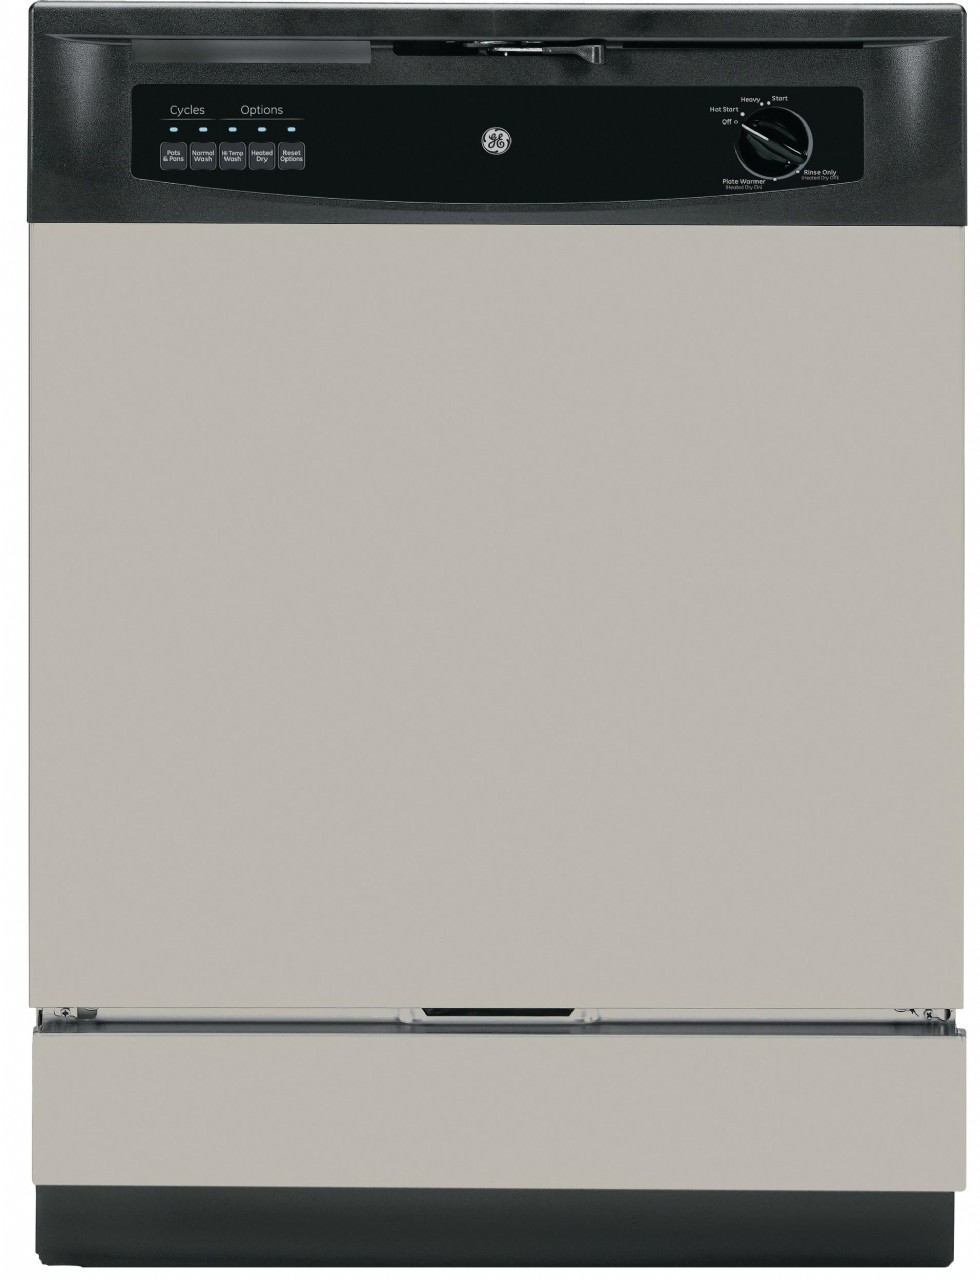 Why does my GE dishwasher keep shutting off?